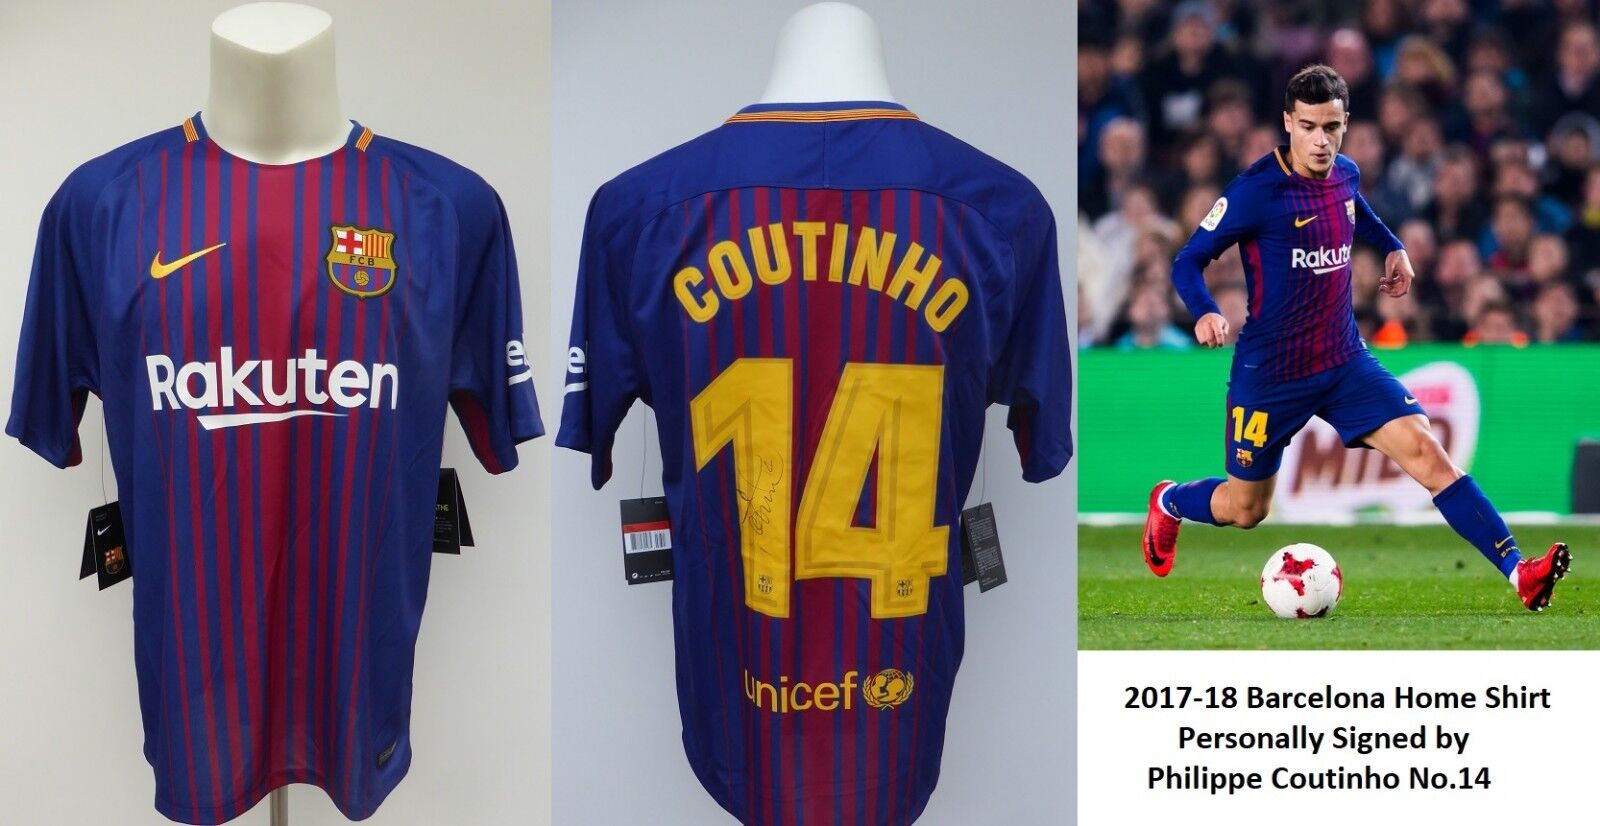 reputable site d23f5 84850 Details about 2017-18 FC Barcelona Champions Home Shirt Signed Philippe  Coutinho No.14 (15213)